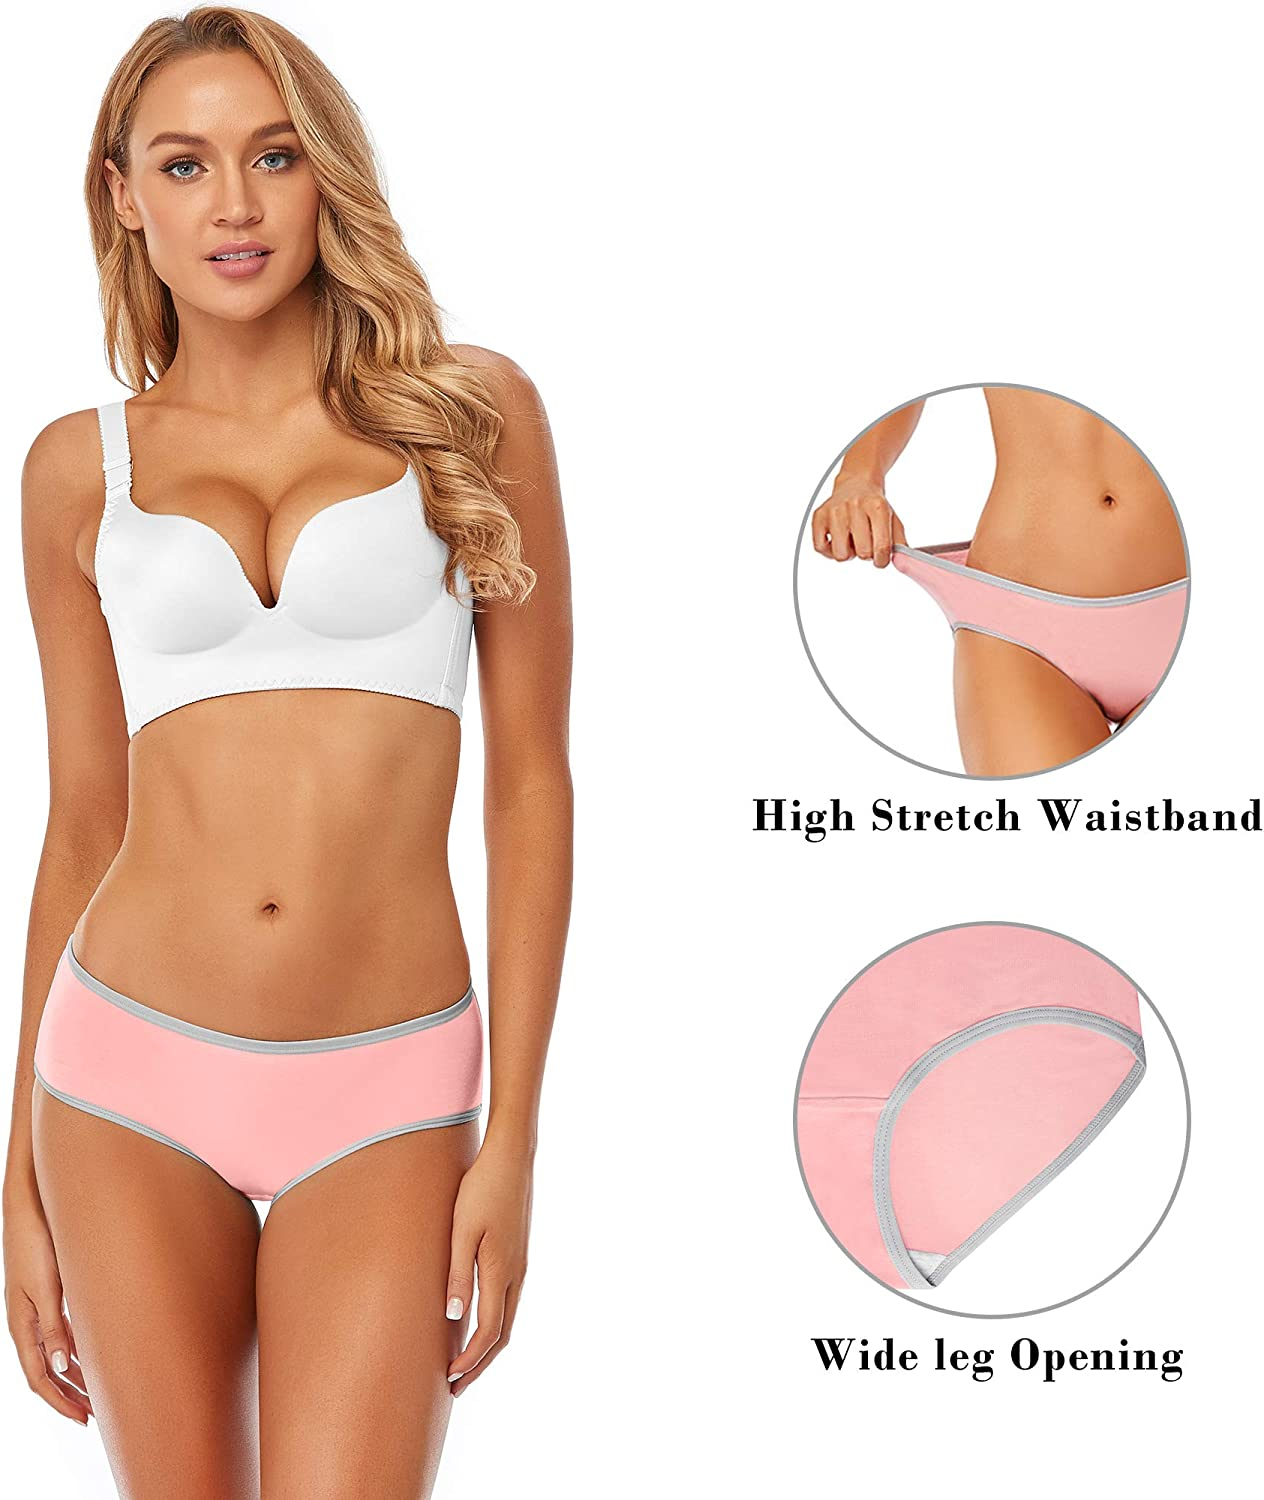 XS-4XL Cotton Underwear For Women Bikini Full Coverage Panties Soft Stretch Breathable Hispter Ladies Briefs 6 Pack